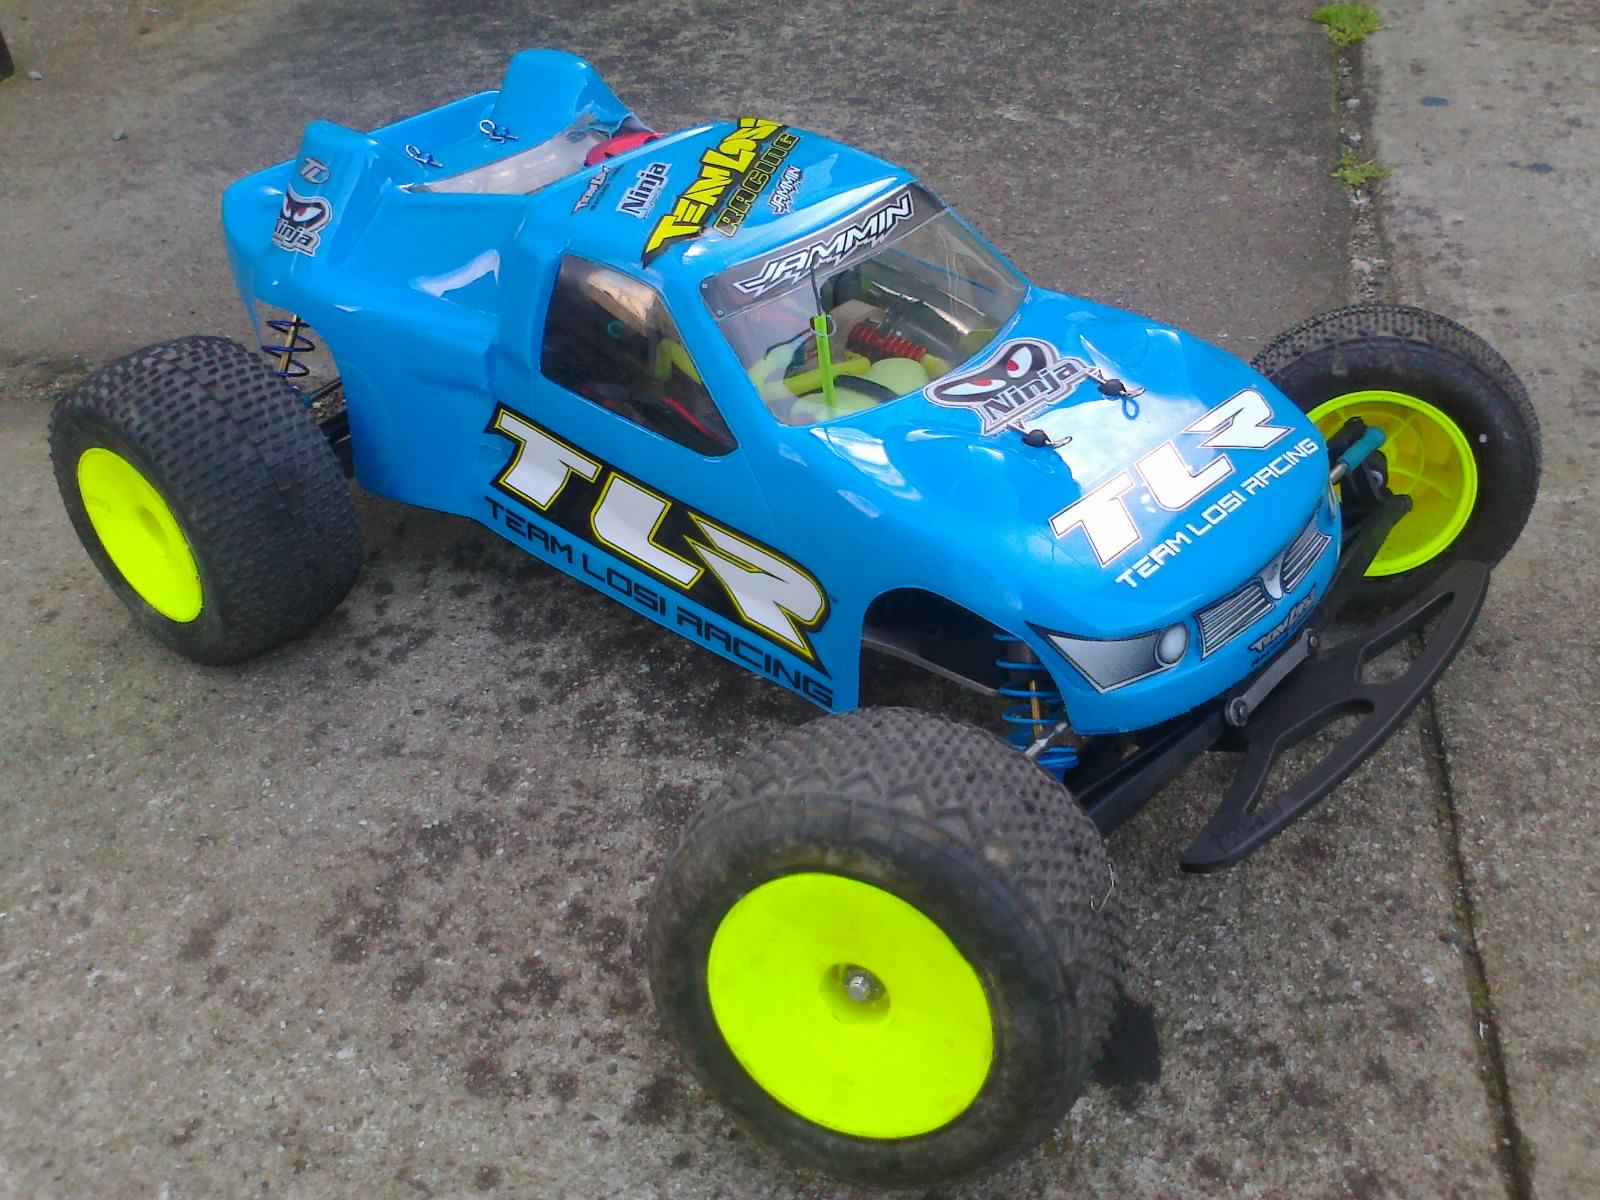 ebay rc trucks used with 608269 1 10 Stadium Truck Nitro on Terrie Ebay Lowbed as well Ford Ranger further Terrie Ebay Lowbed furthermore 361329371078 moreover 1977 Pontiac Firebird Trans Am Smokey And The Bandit Promo Car Sells For 550k 104214.